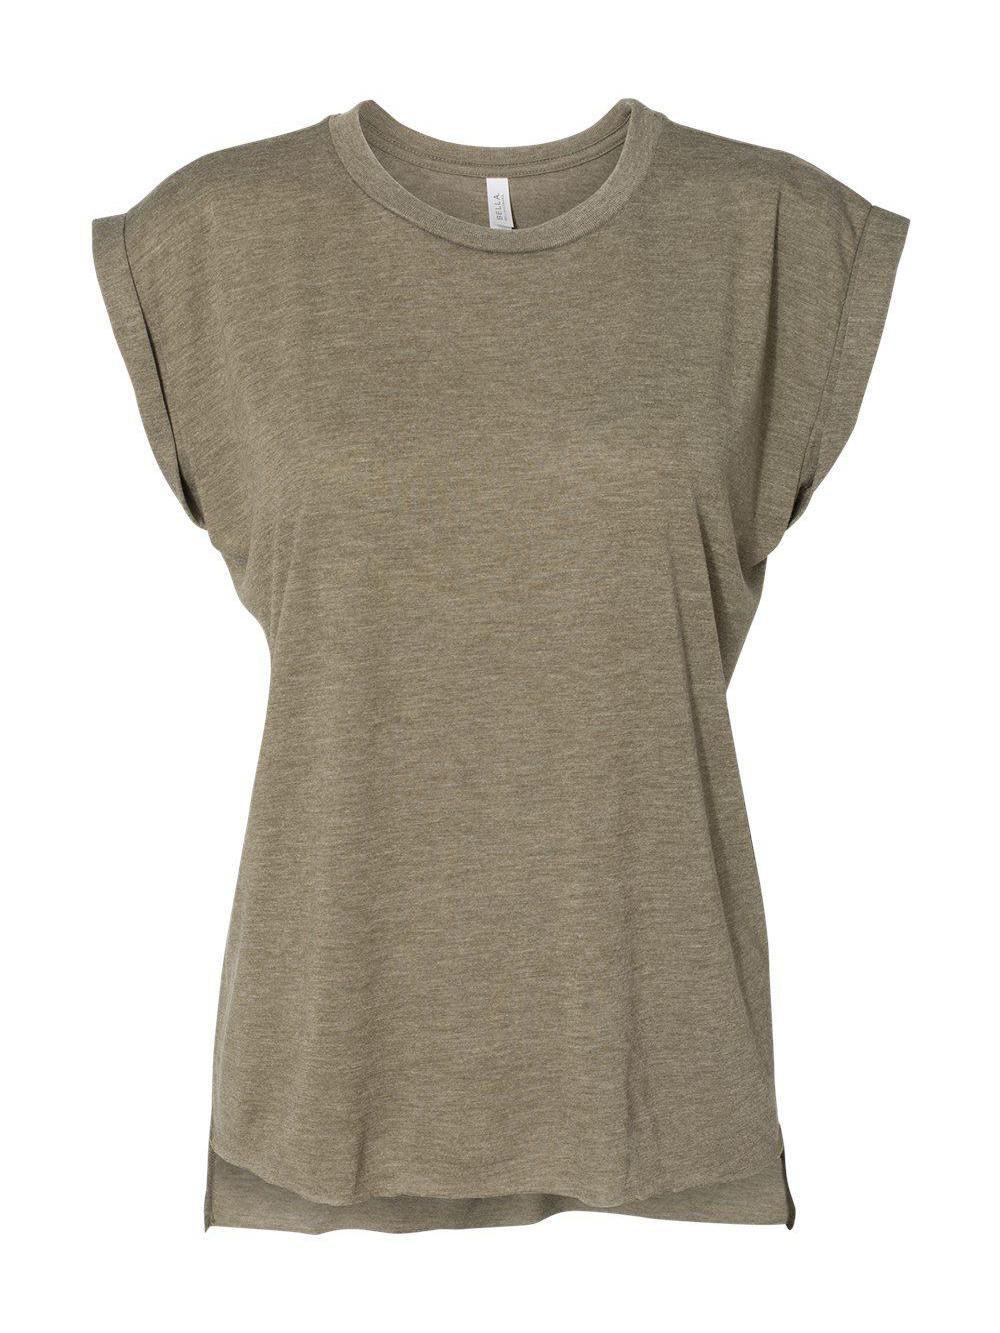 Bella-Canvas-Women-039-s-Flowy-Muscle-Tee-with-Rolled-Cuffs-8804 thumbnail 15